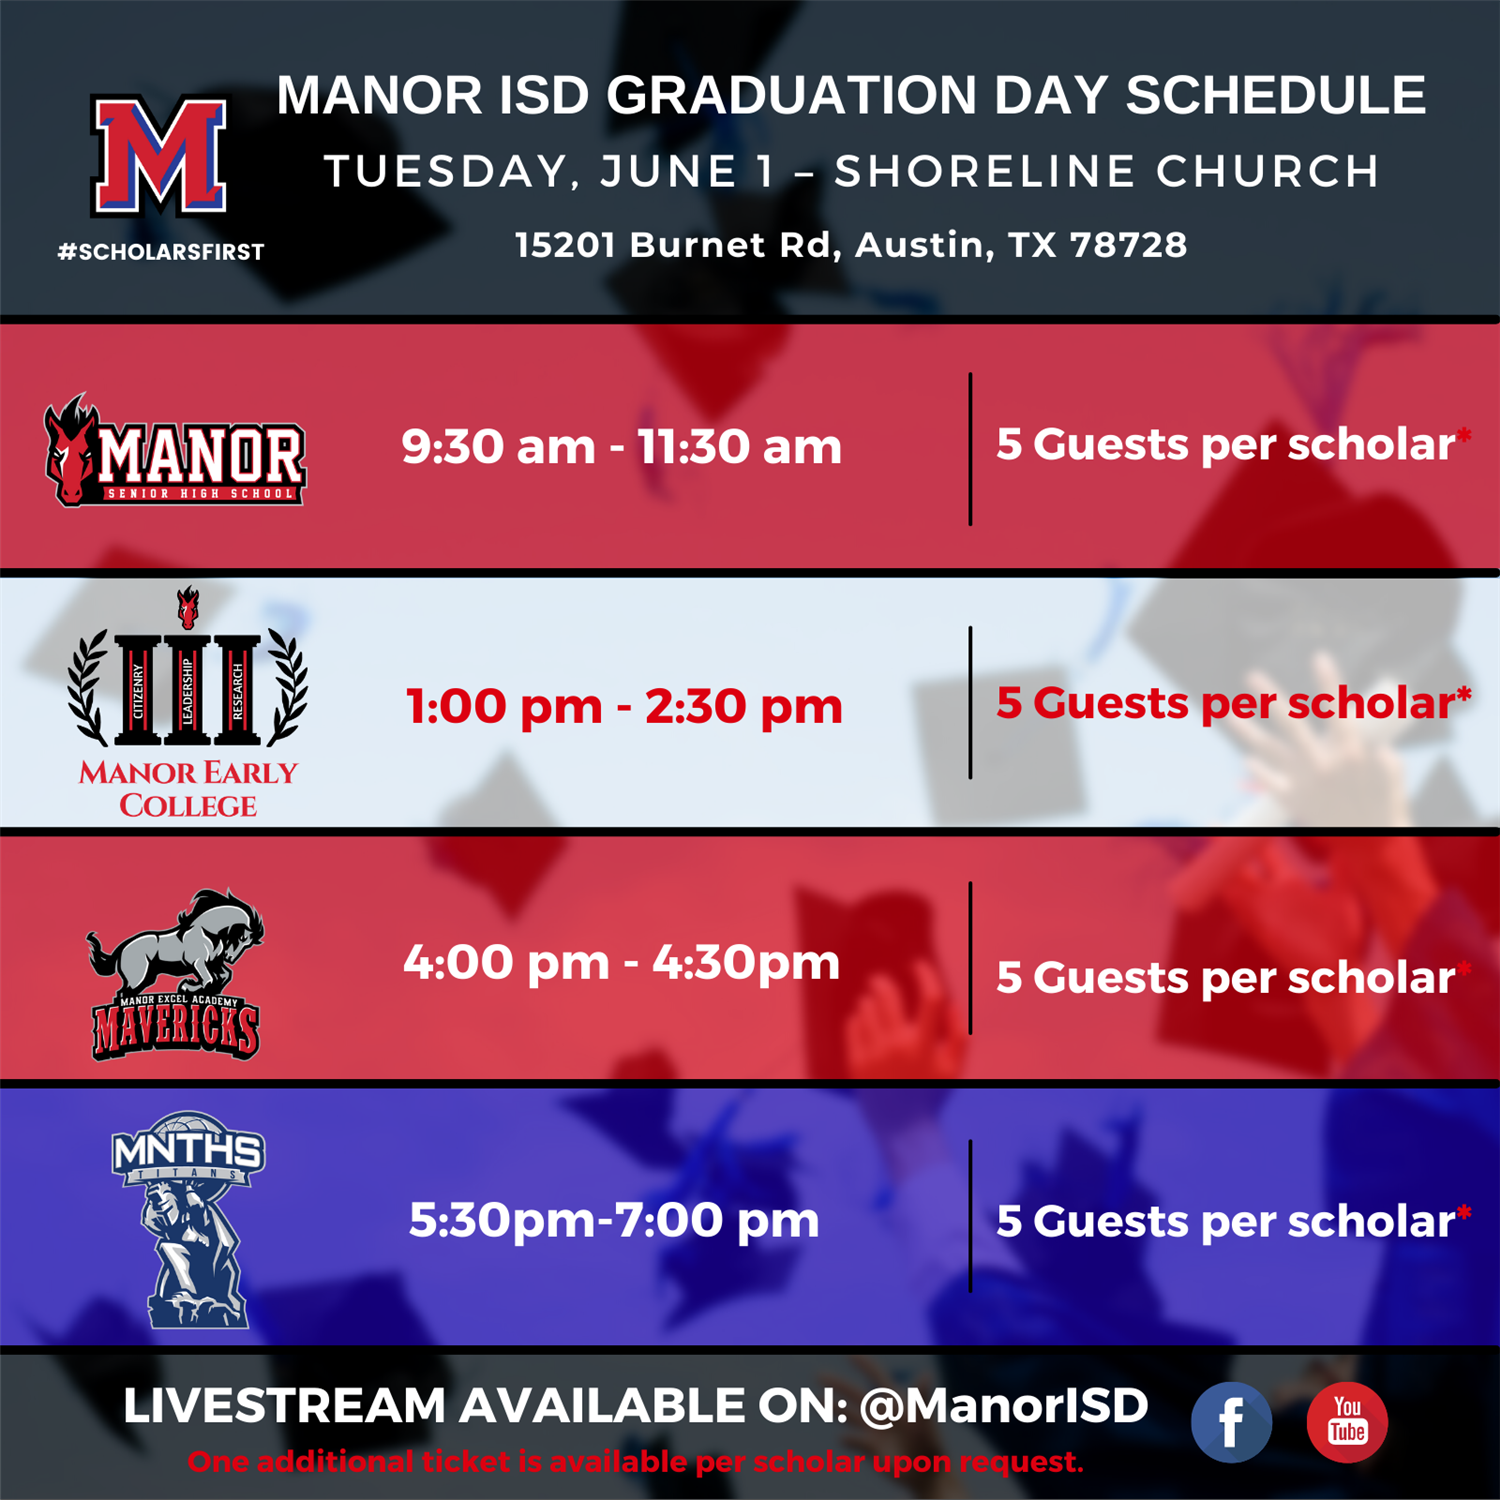 Manor ISD Graduation Day 2021 Schedule